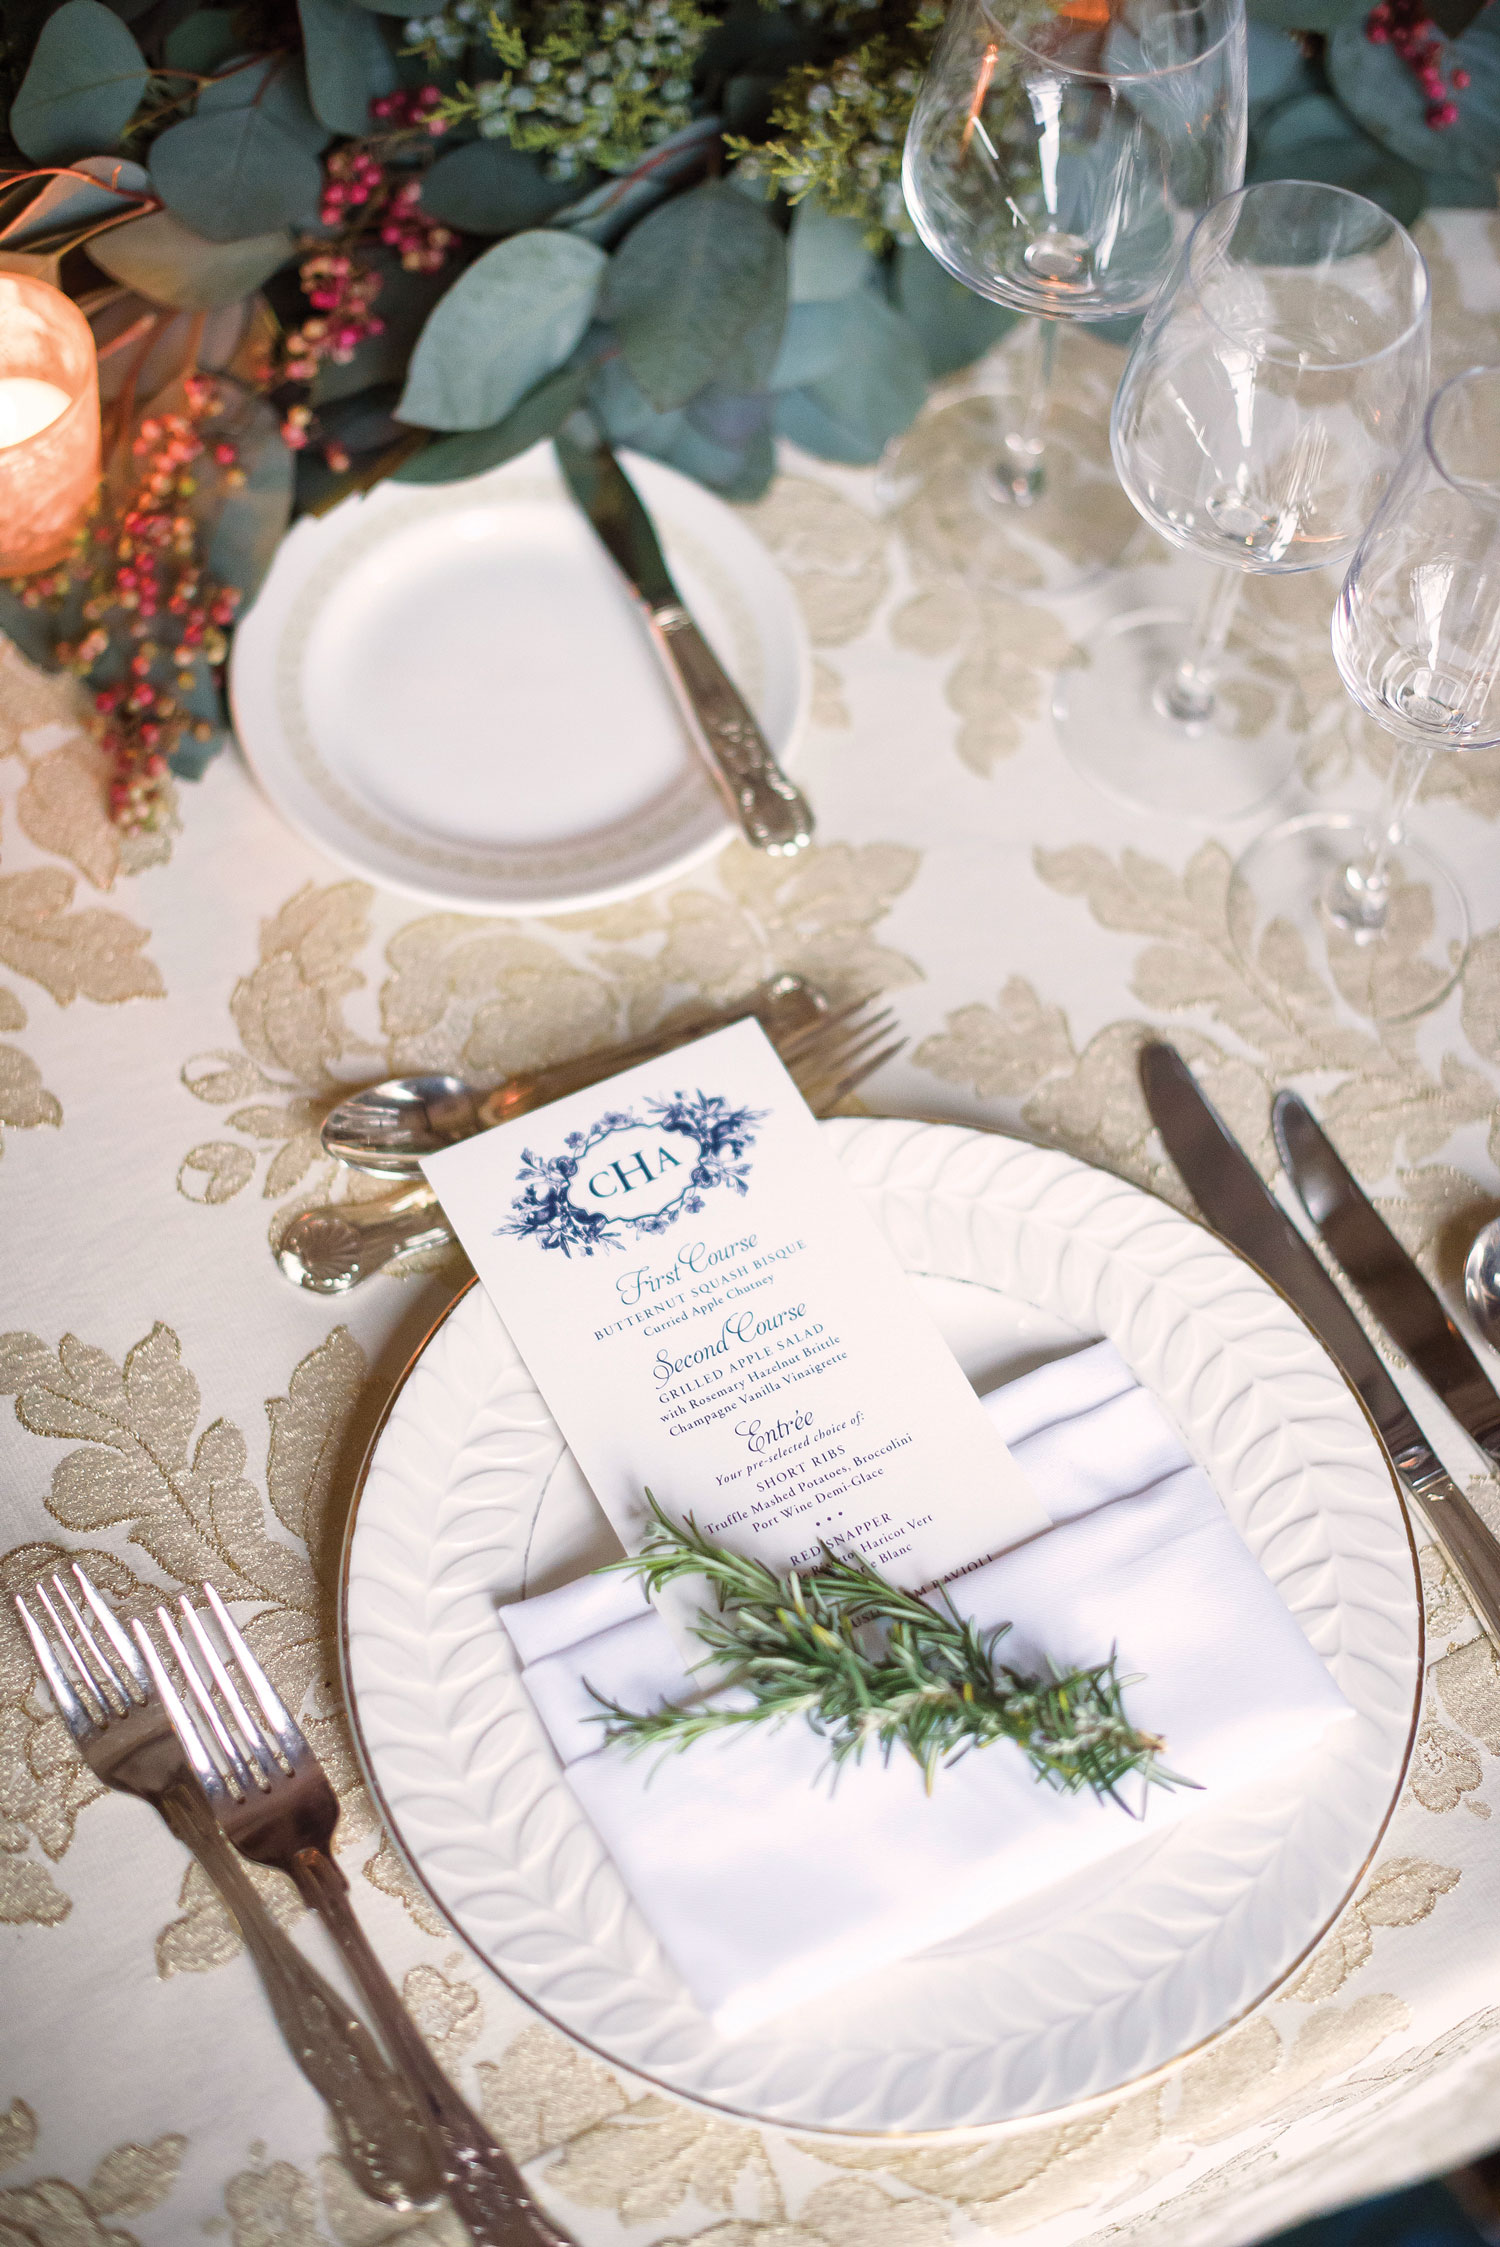 Inside Weddings winter 2018 issue preview real weddings wedding ideas place setting